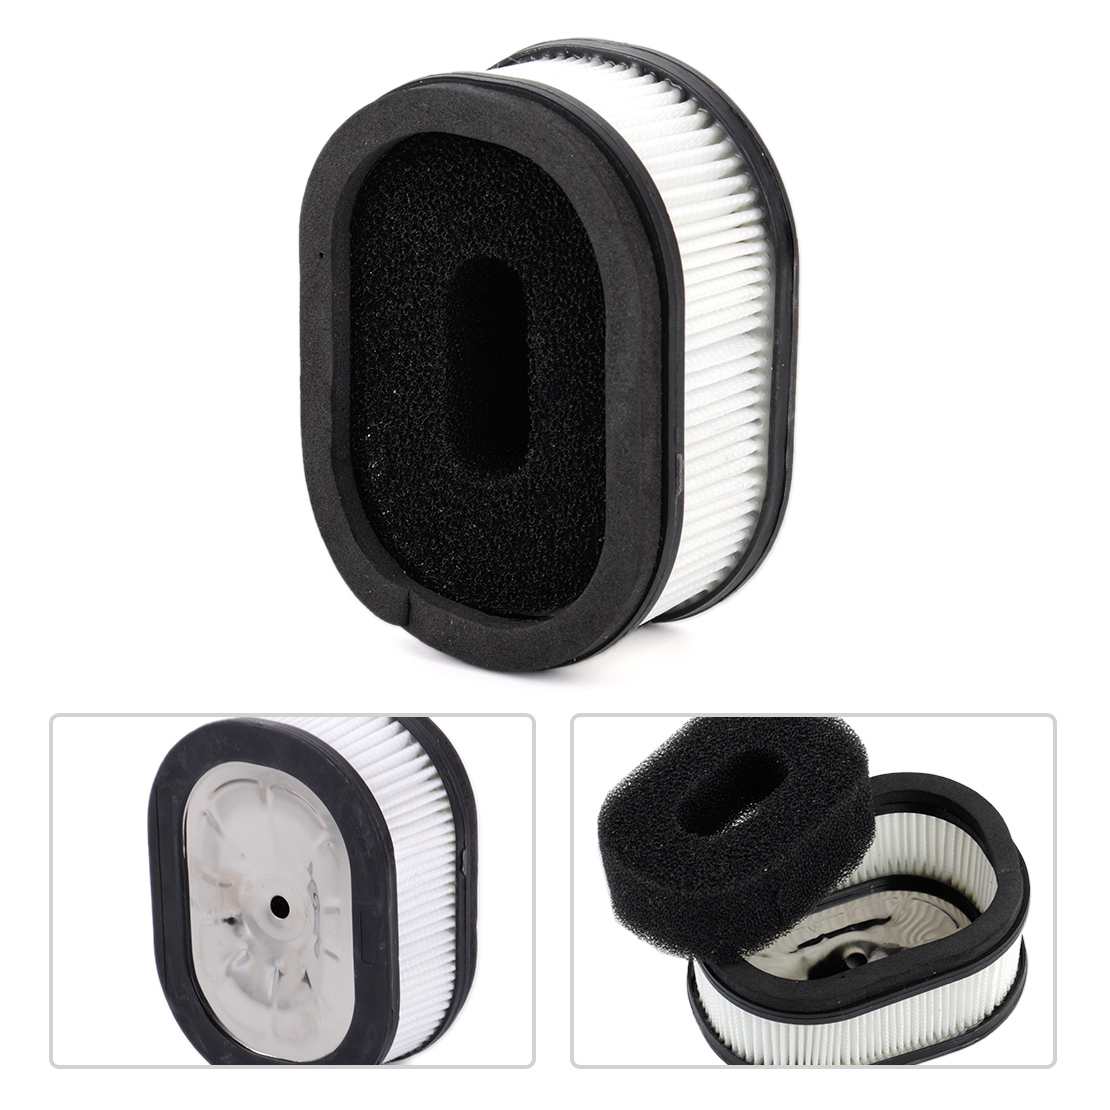 LETAOSK Air Filter with Sponge Fit for Stihl 066 065 <font><b>MS660</b></font> MS650 Chainsaw Replacement 0000 120 1653 image